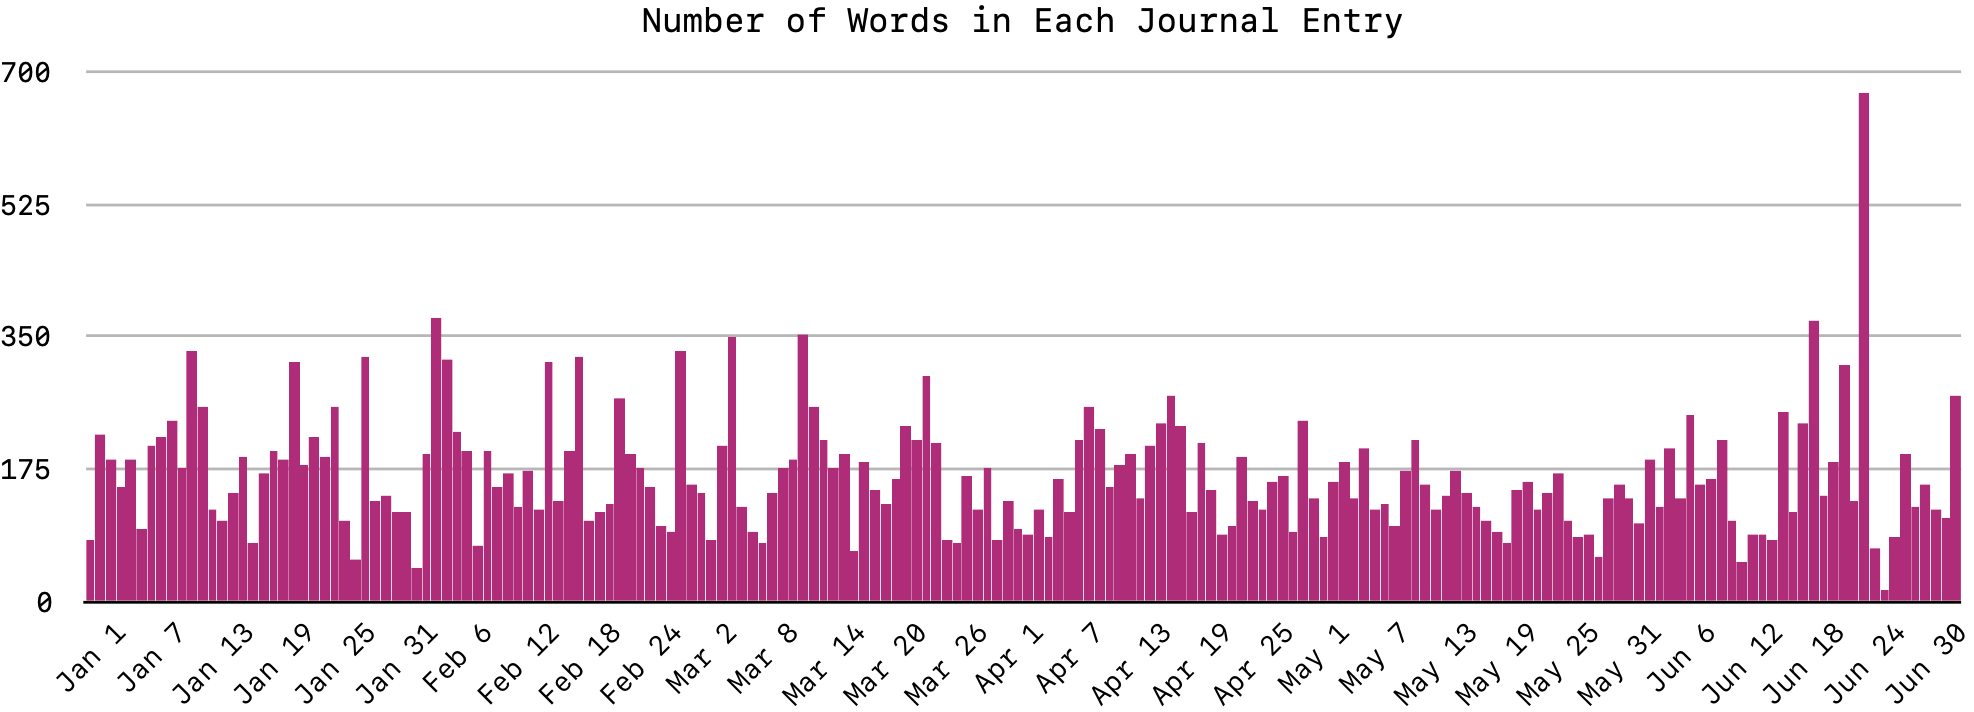 Number of Words in Each Journal Entry